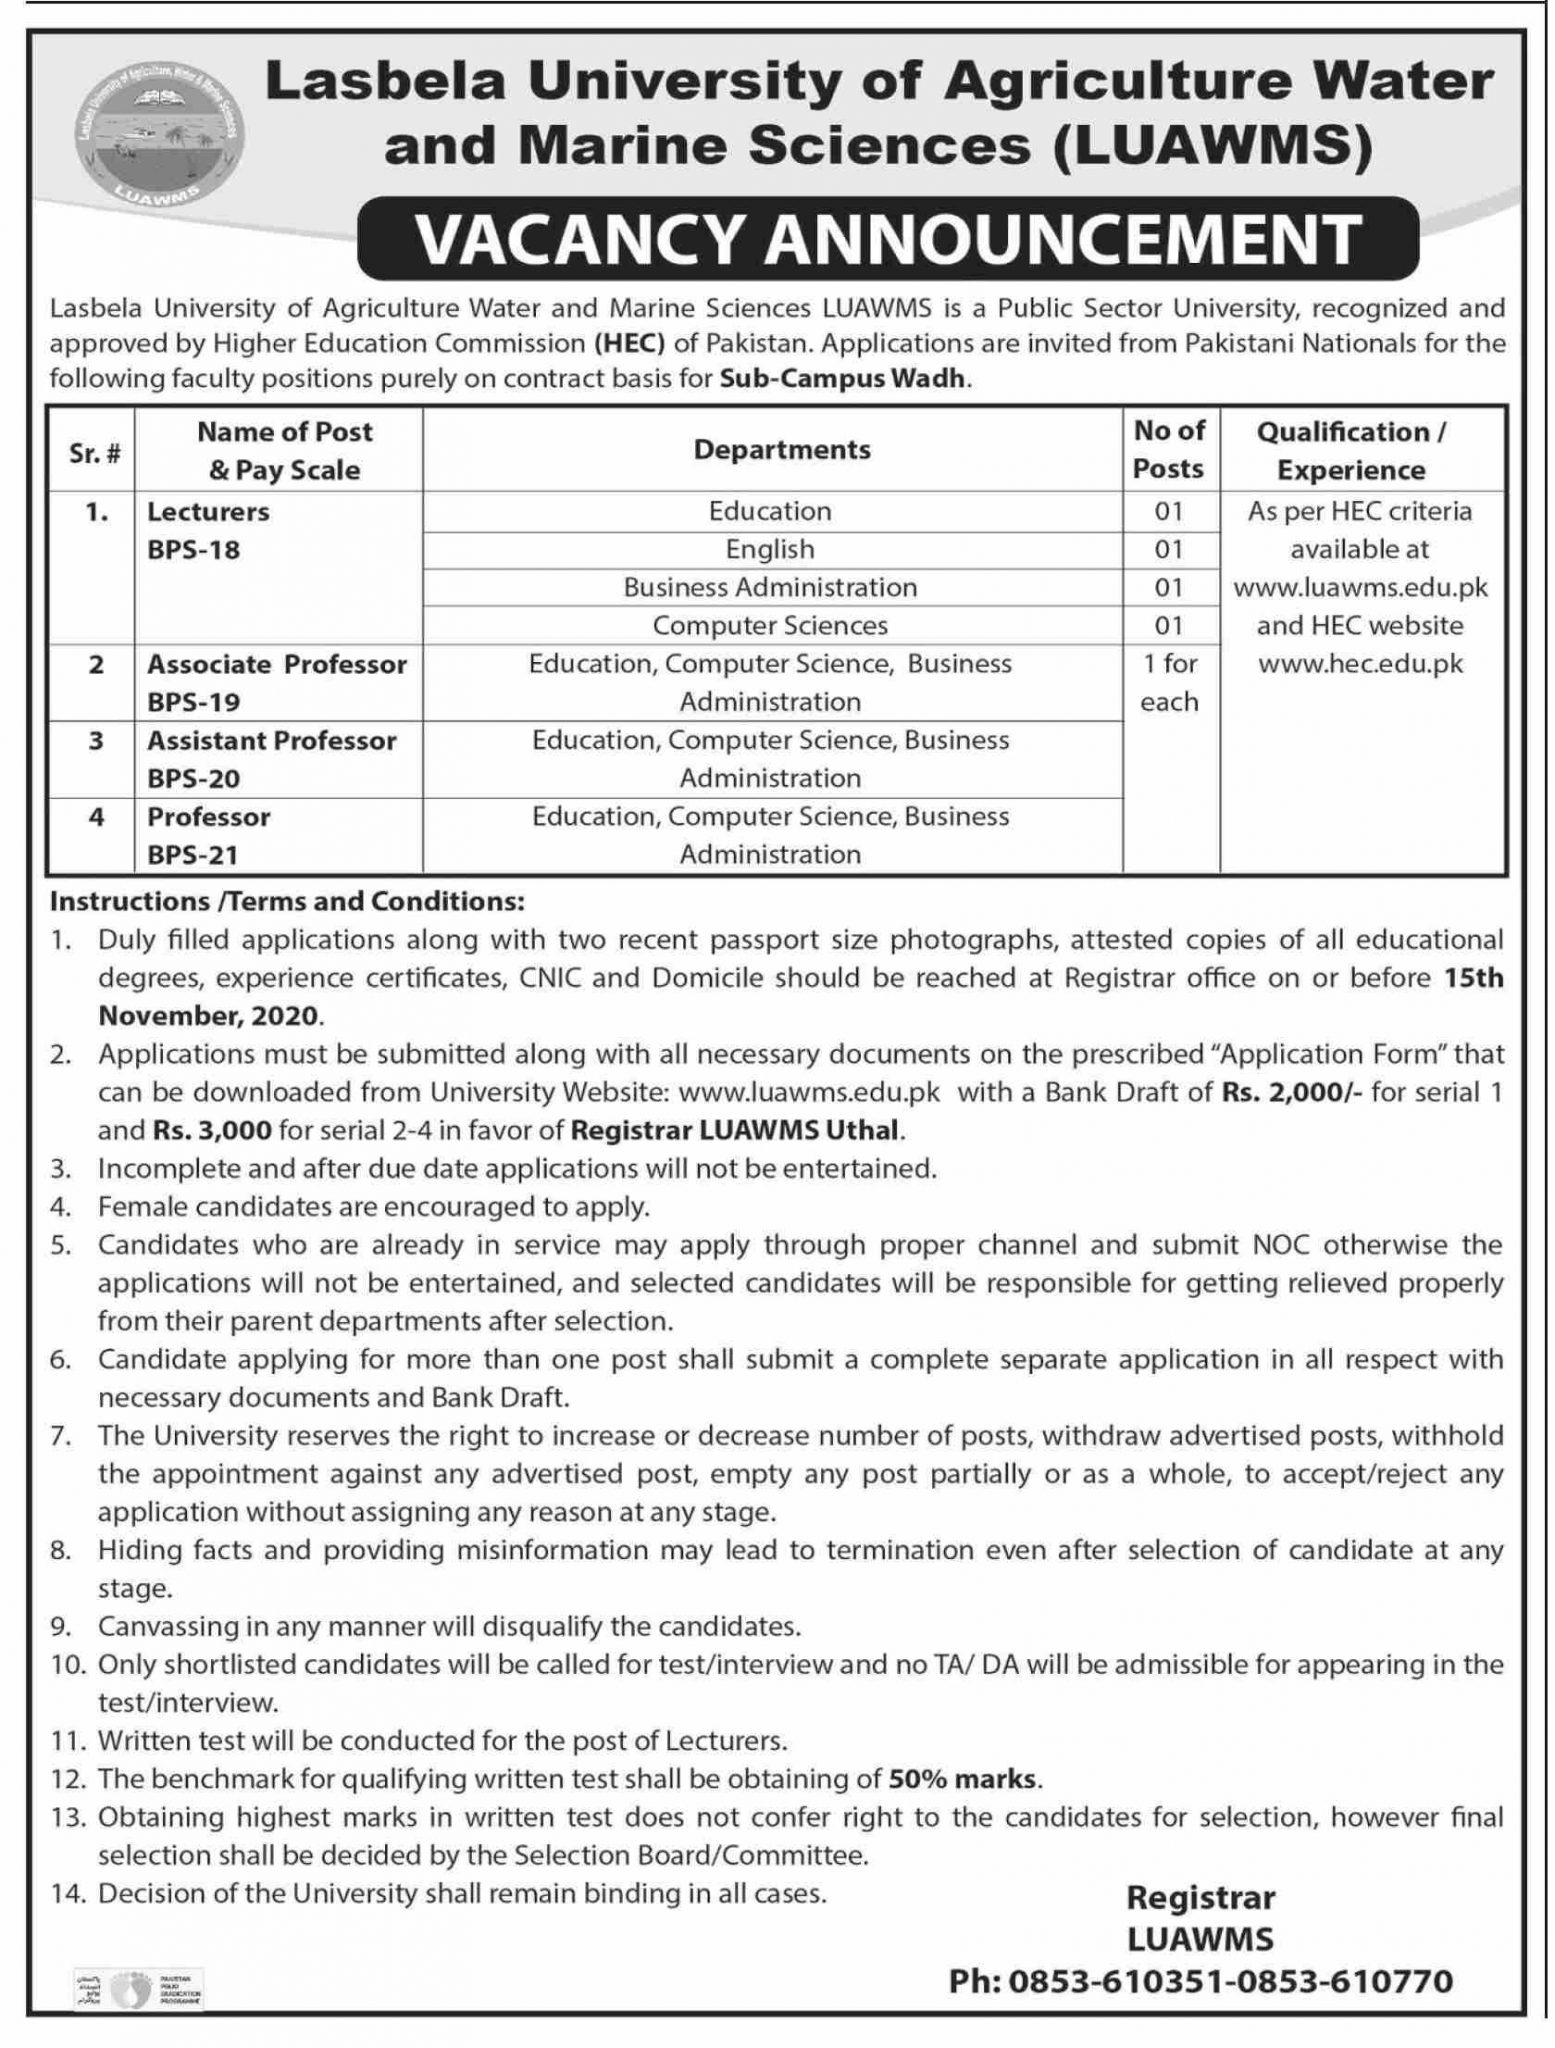 Lasbela University of Agriculture Water & Marine Sciences LUAWMS Jobs 2020